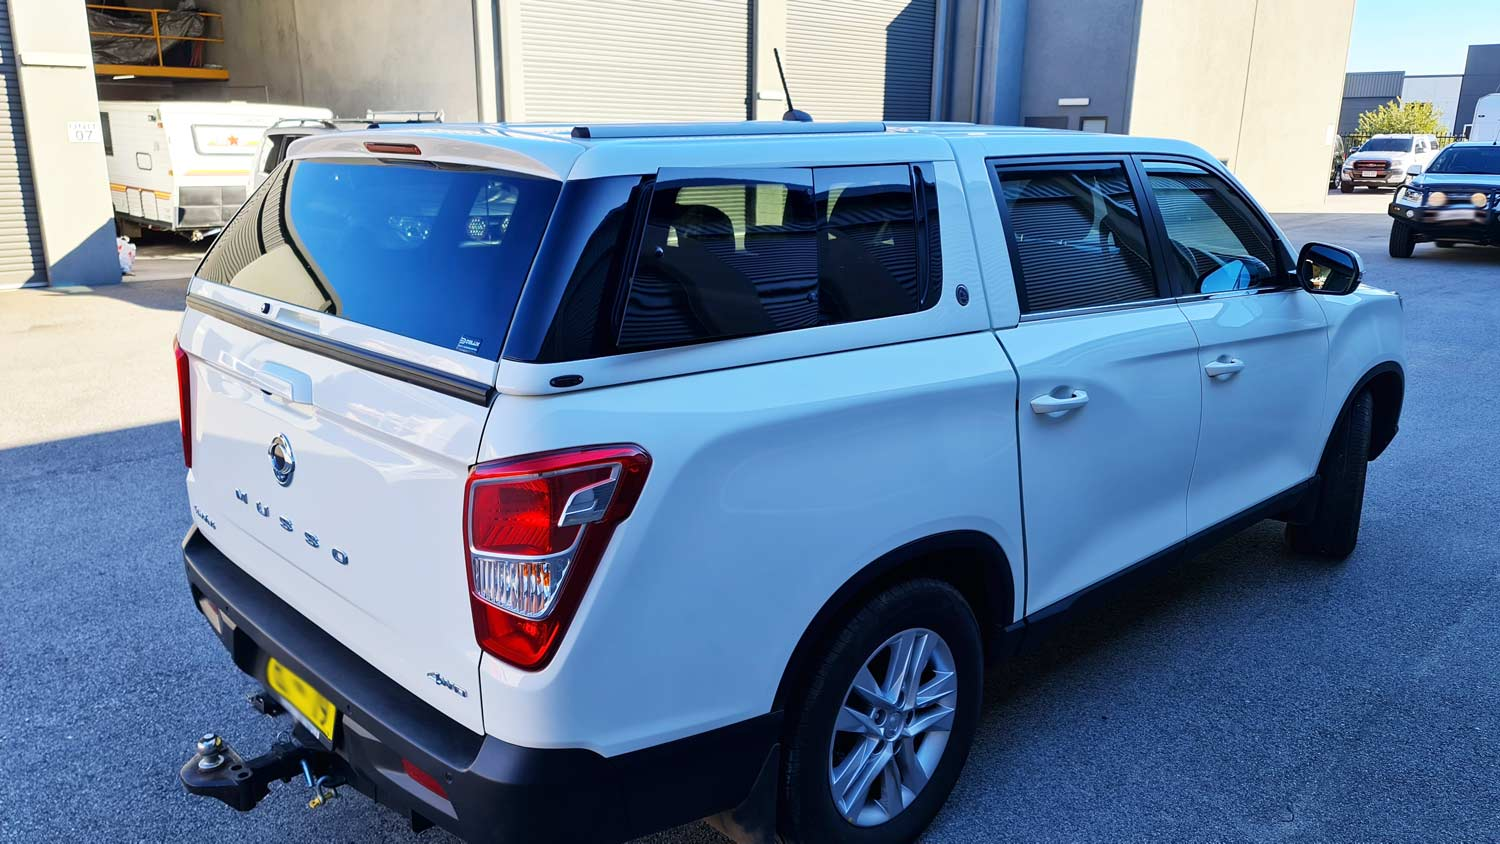 Elysium Canopy on SsangYong Musso -Short Tub- 2018